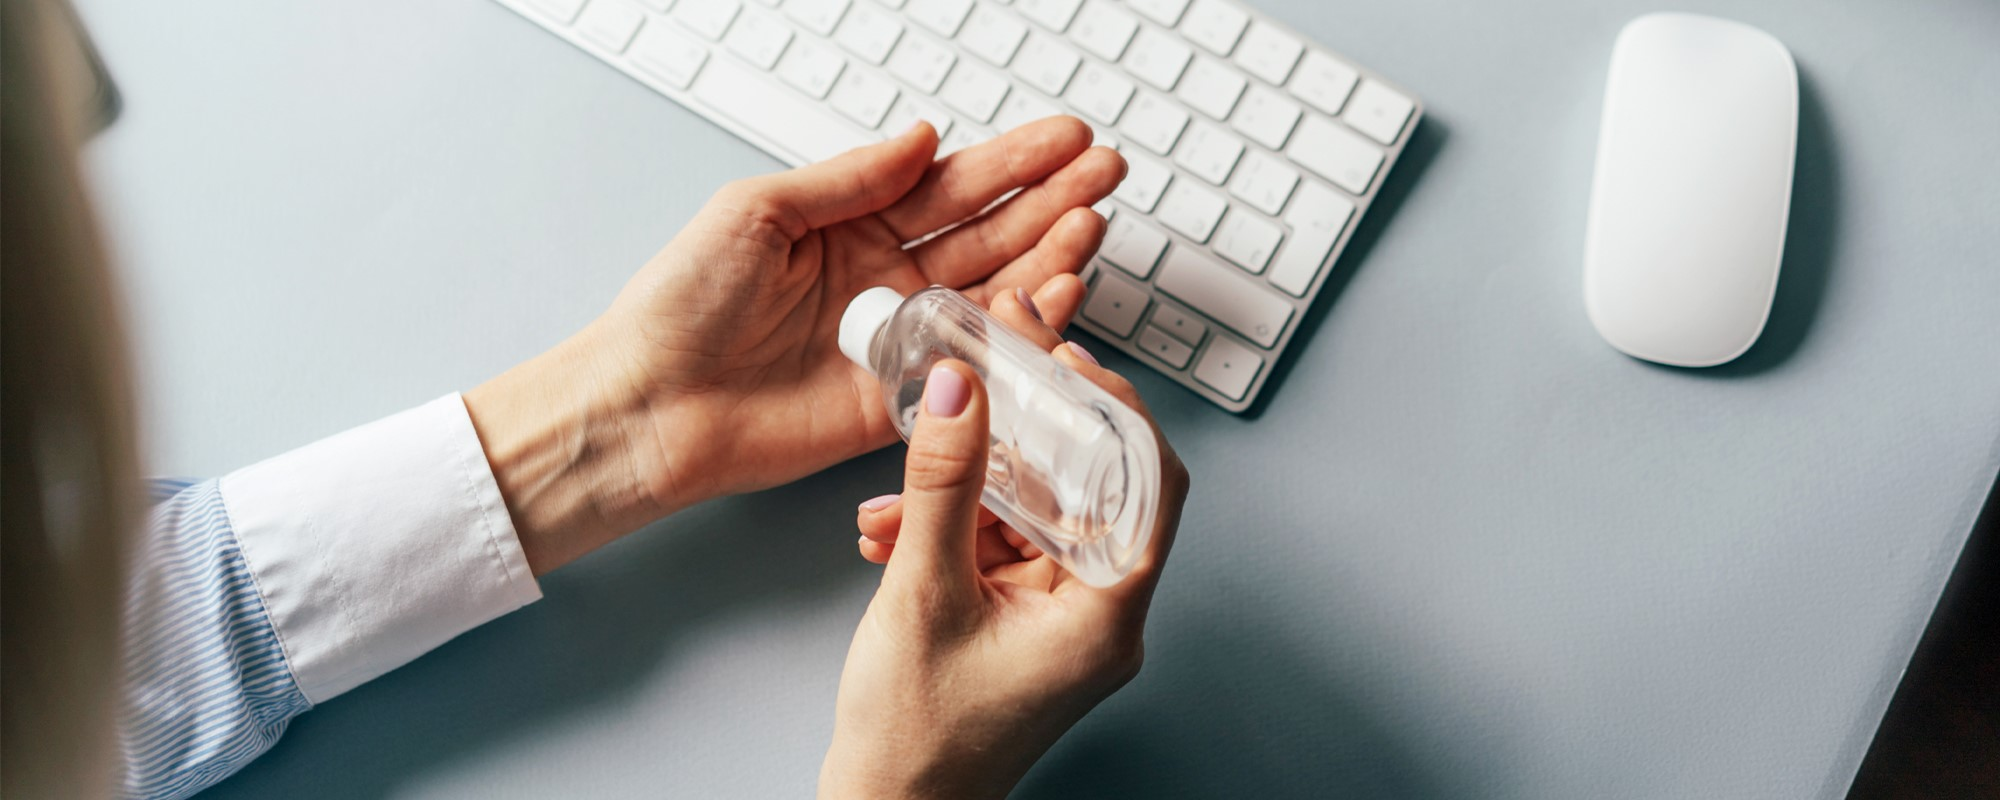 Person using hand sanitizer